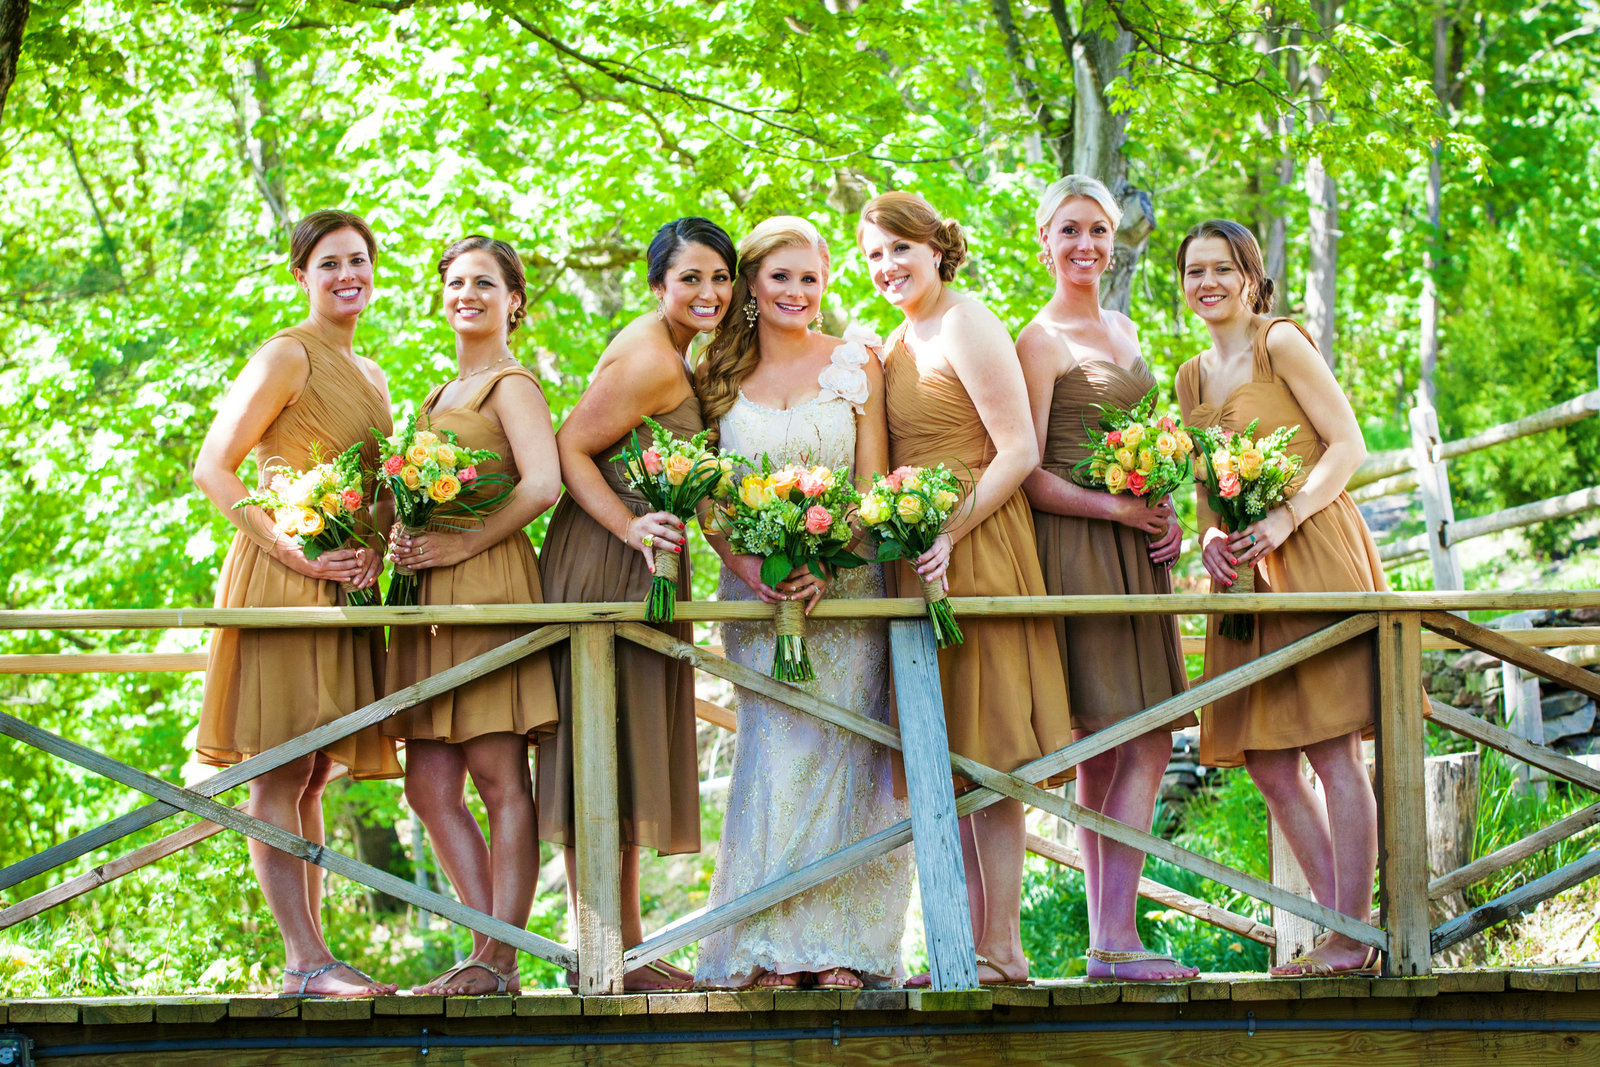 the-inn-at-millrace-pond-wedding-photos-36